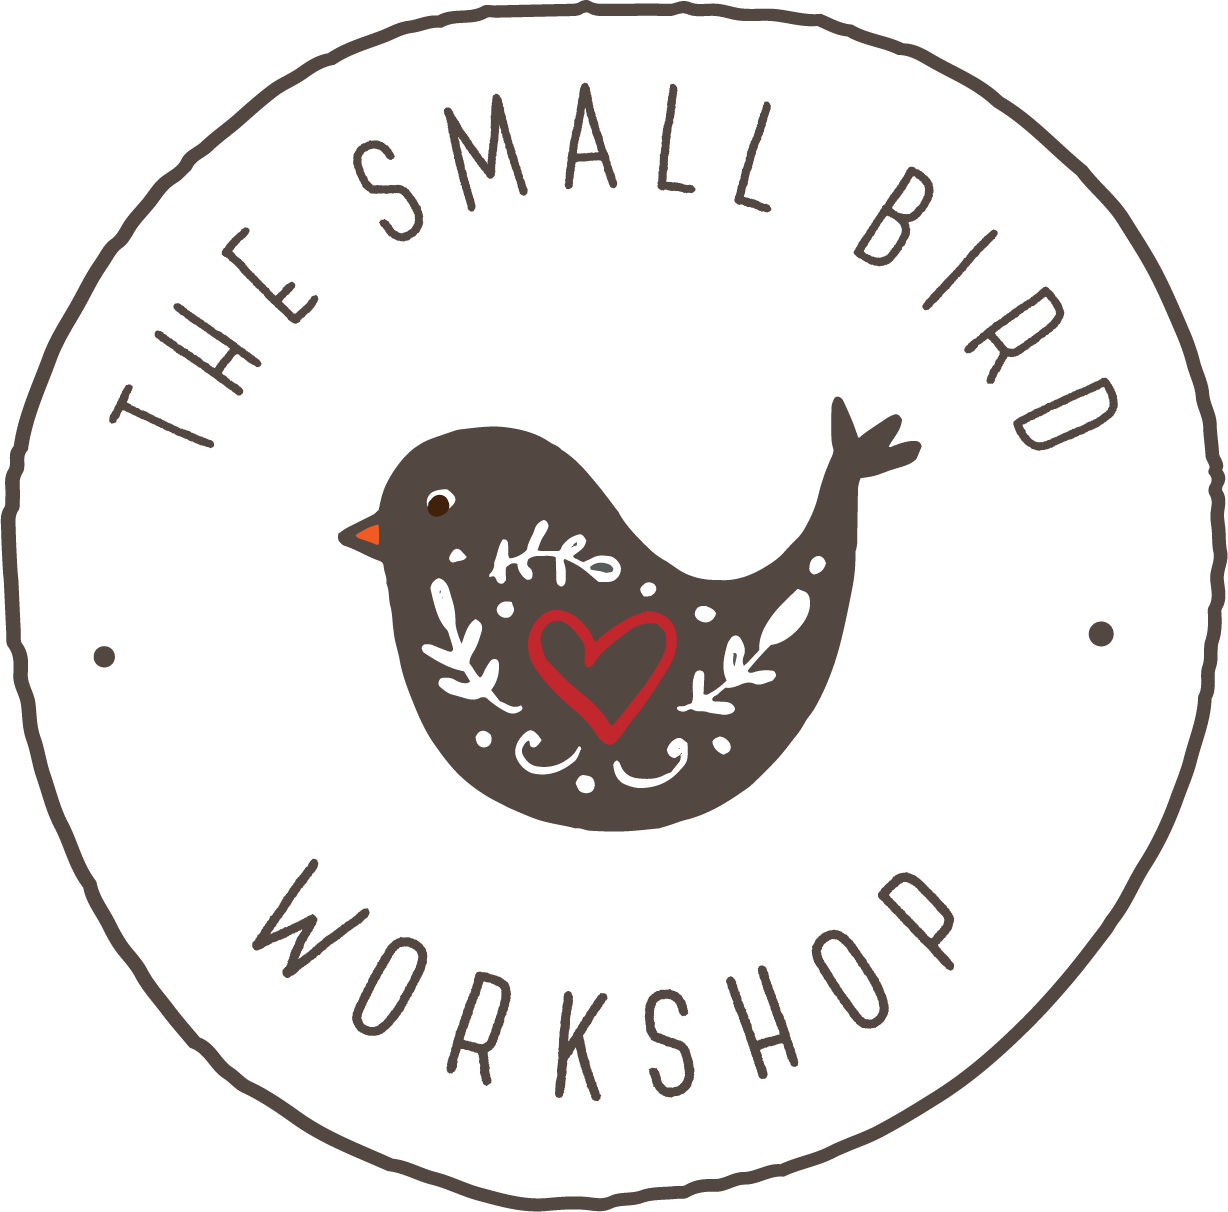 The Small Bird Workshop